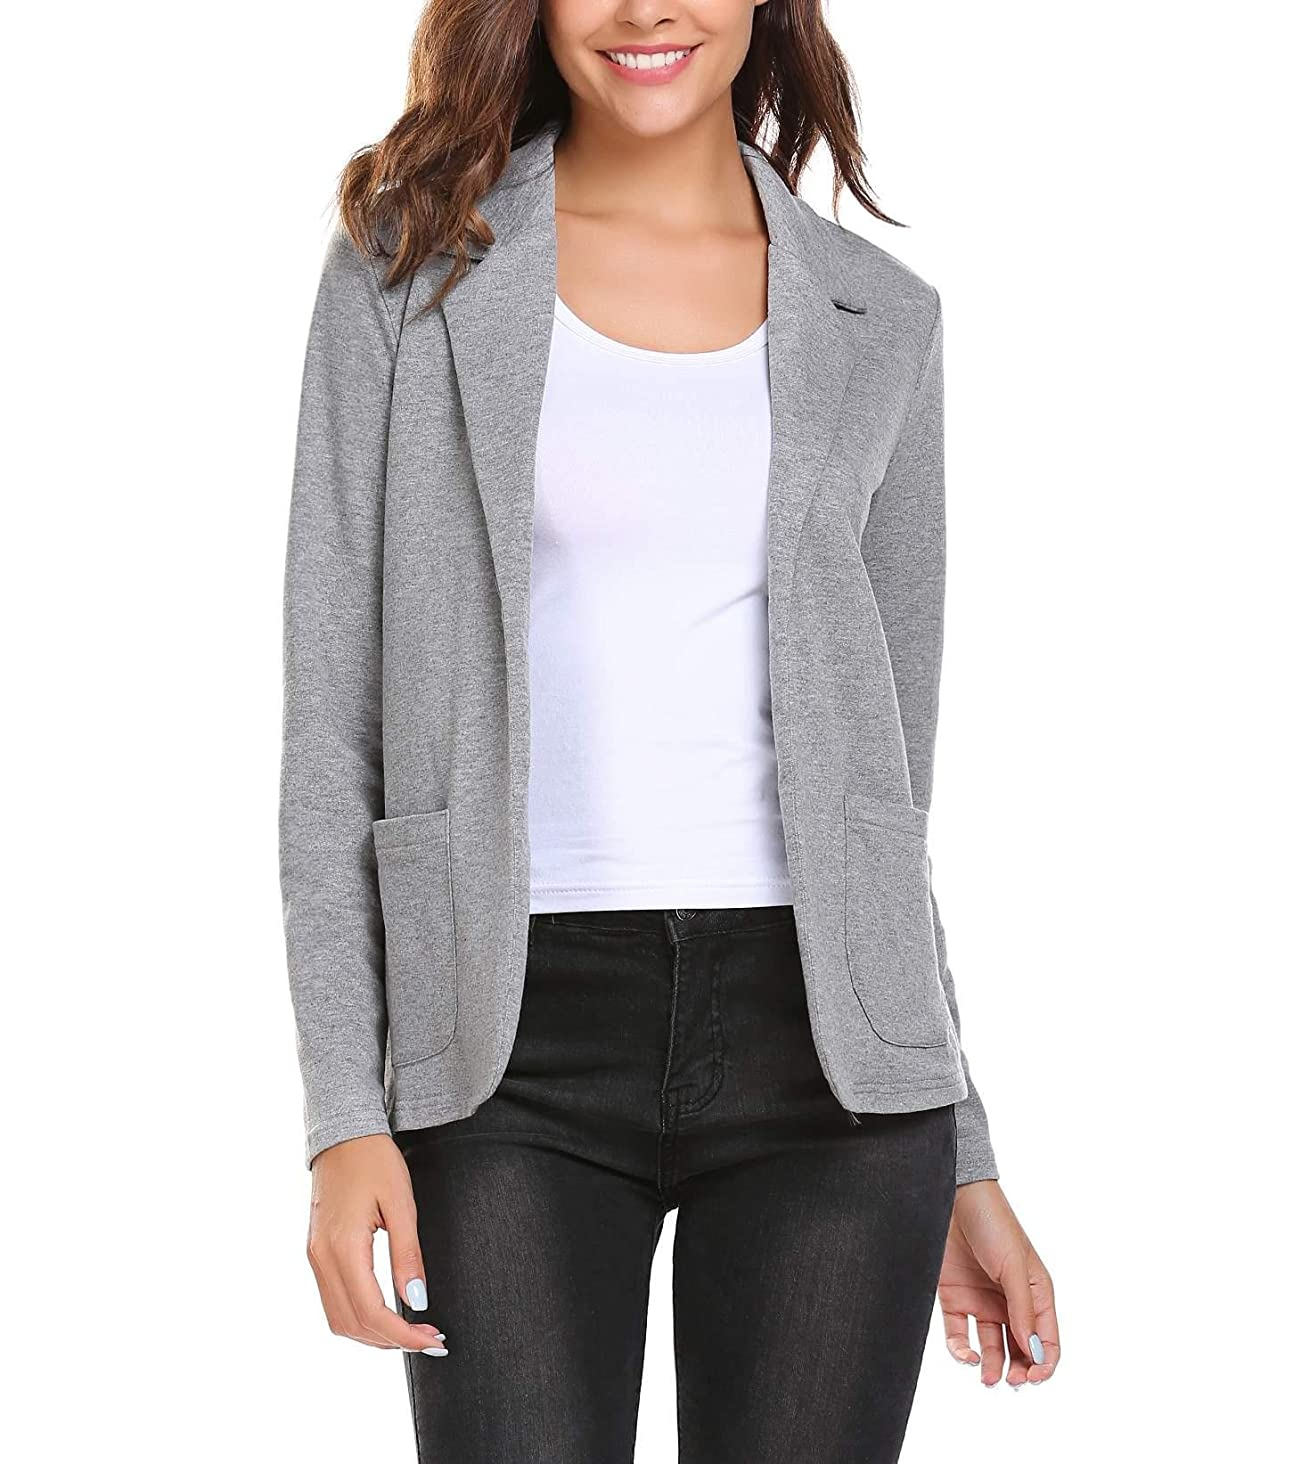 ThinIce Womens Casual Work Office Blazer Open Front Long Sleeve Cardigan Jacket